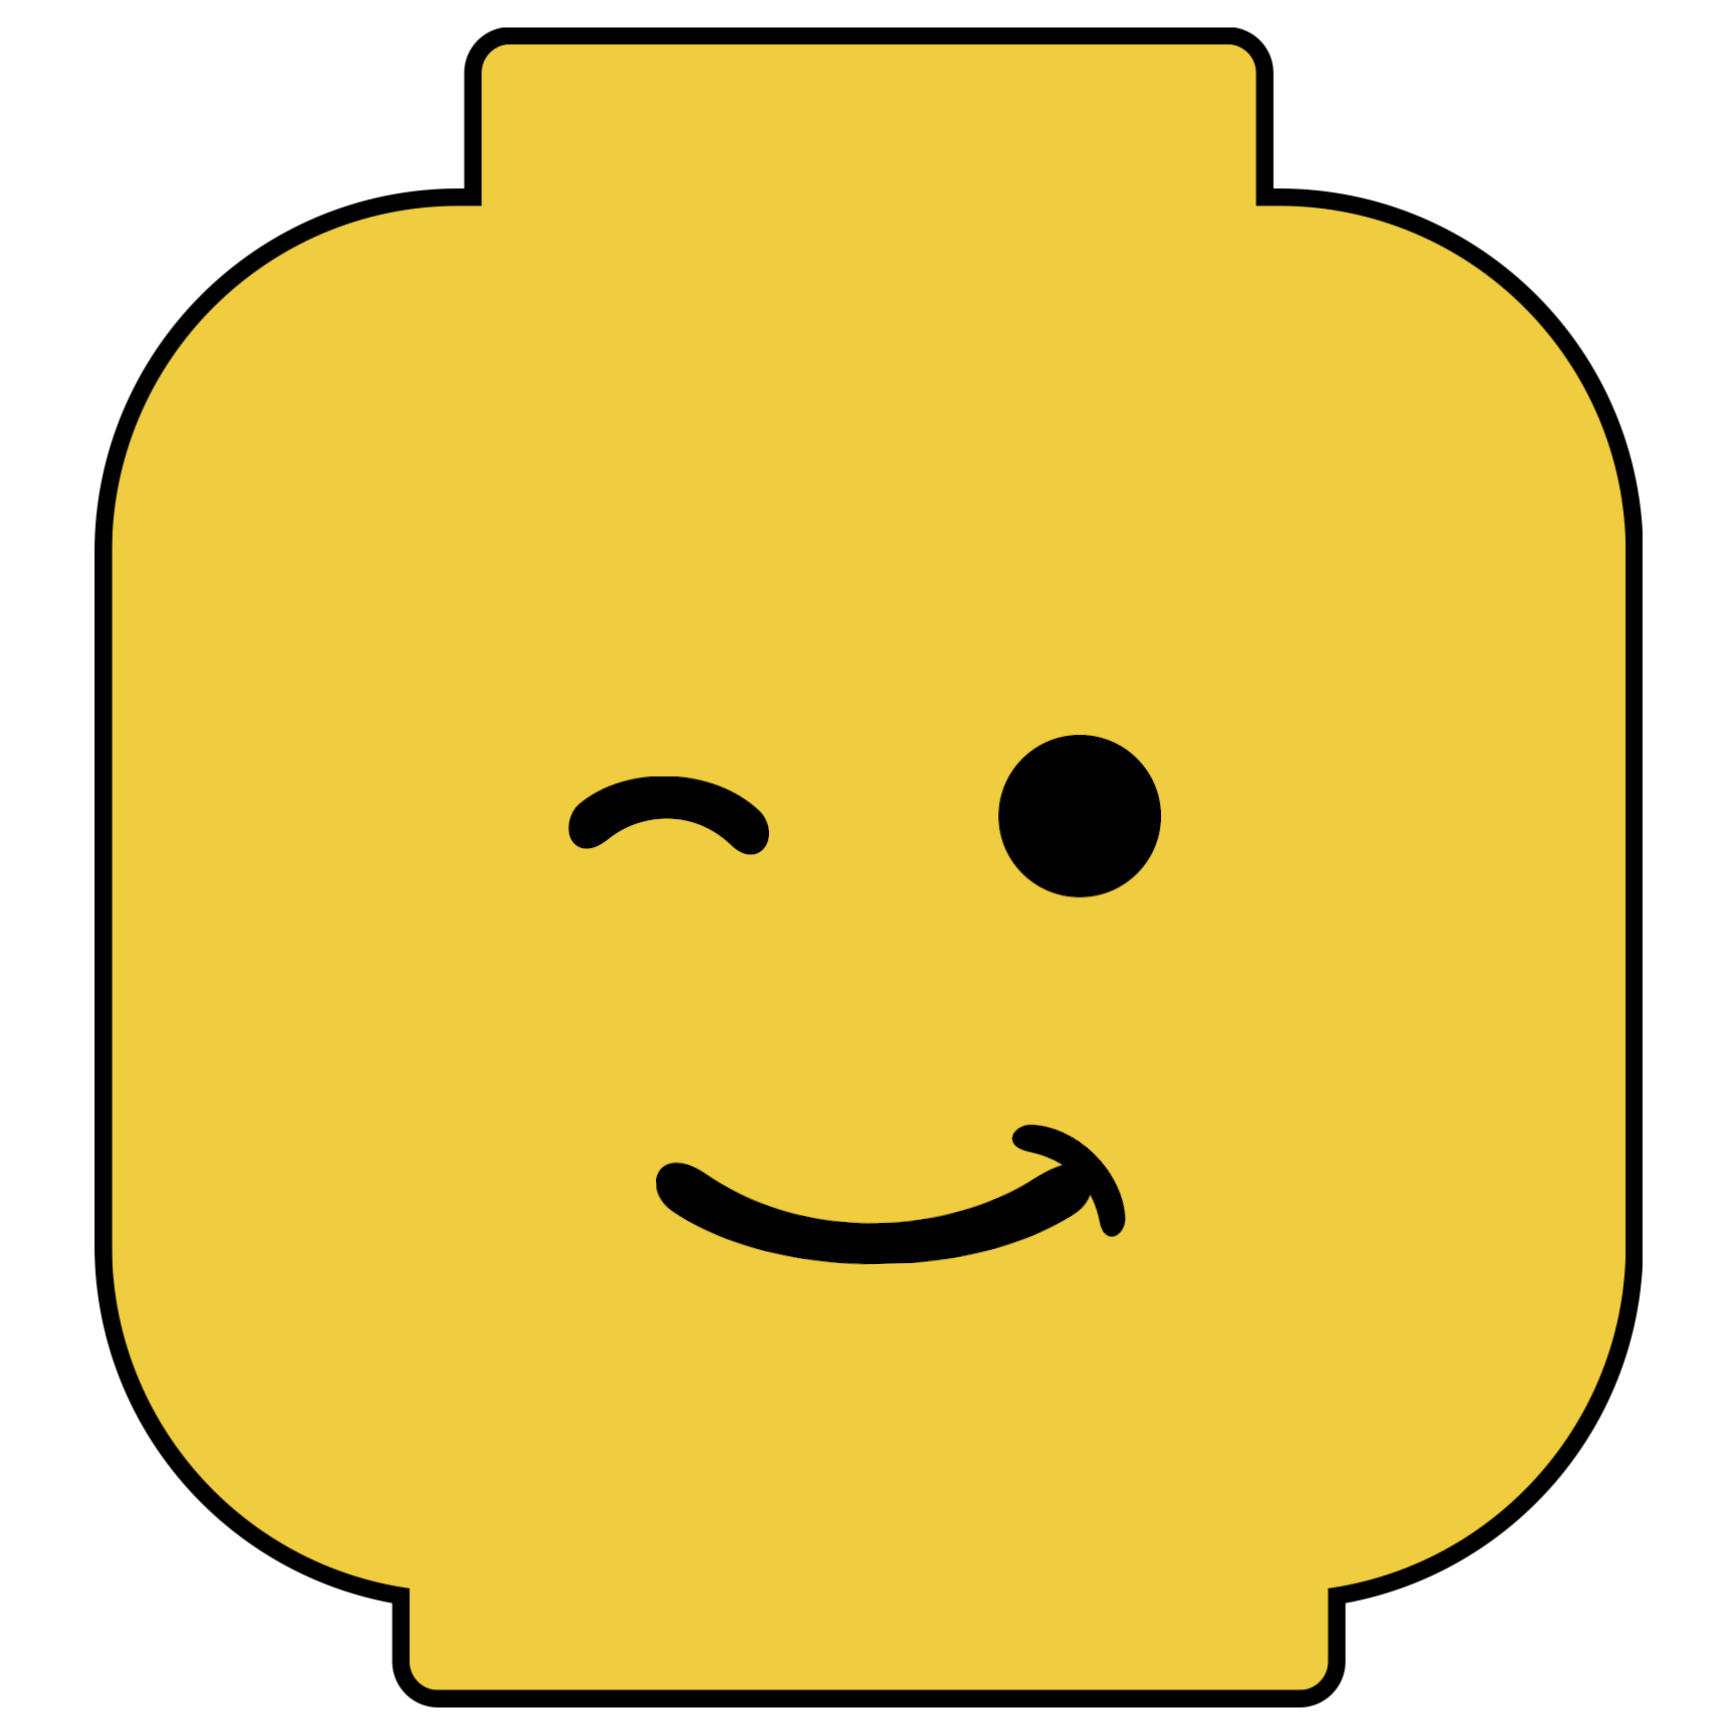 lego minifigure head template - pin the head on the lego man party game free printable